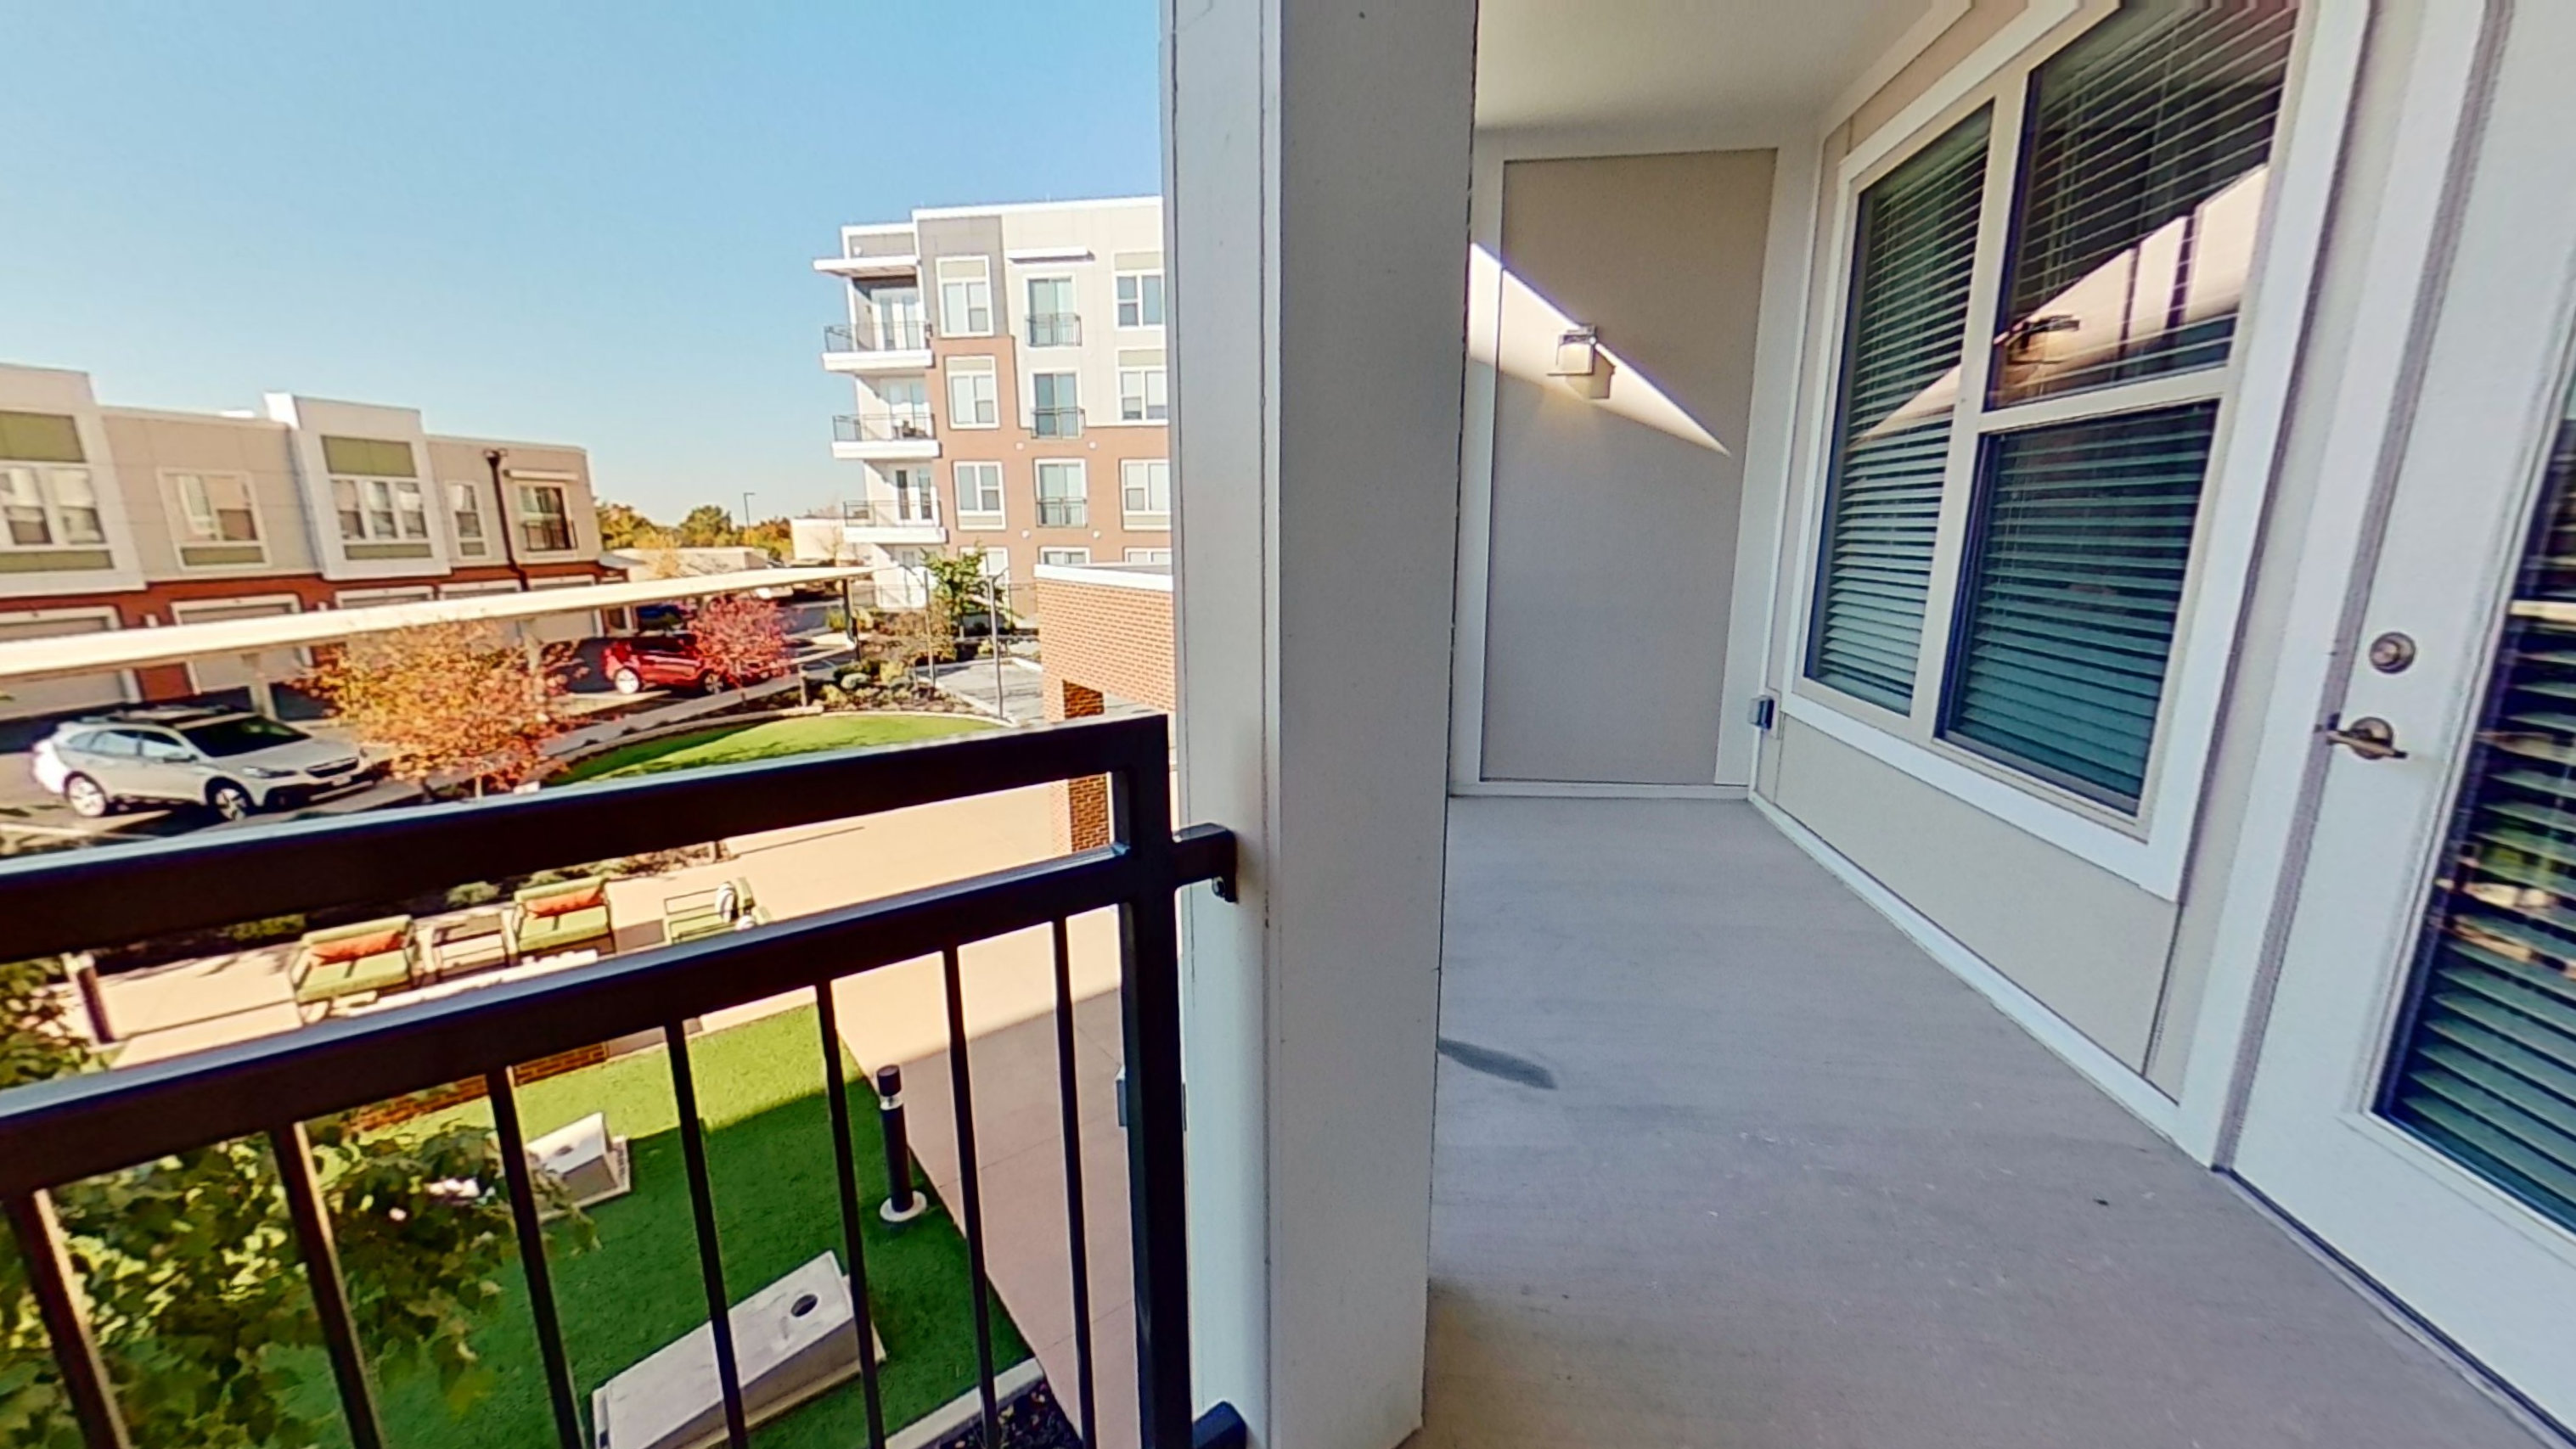 Balcony View at the Vue at Creve Coeur Apartments in Creve Coeur, MO